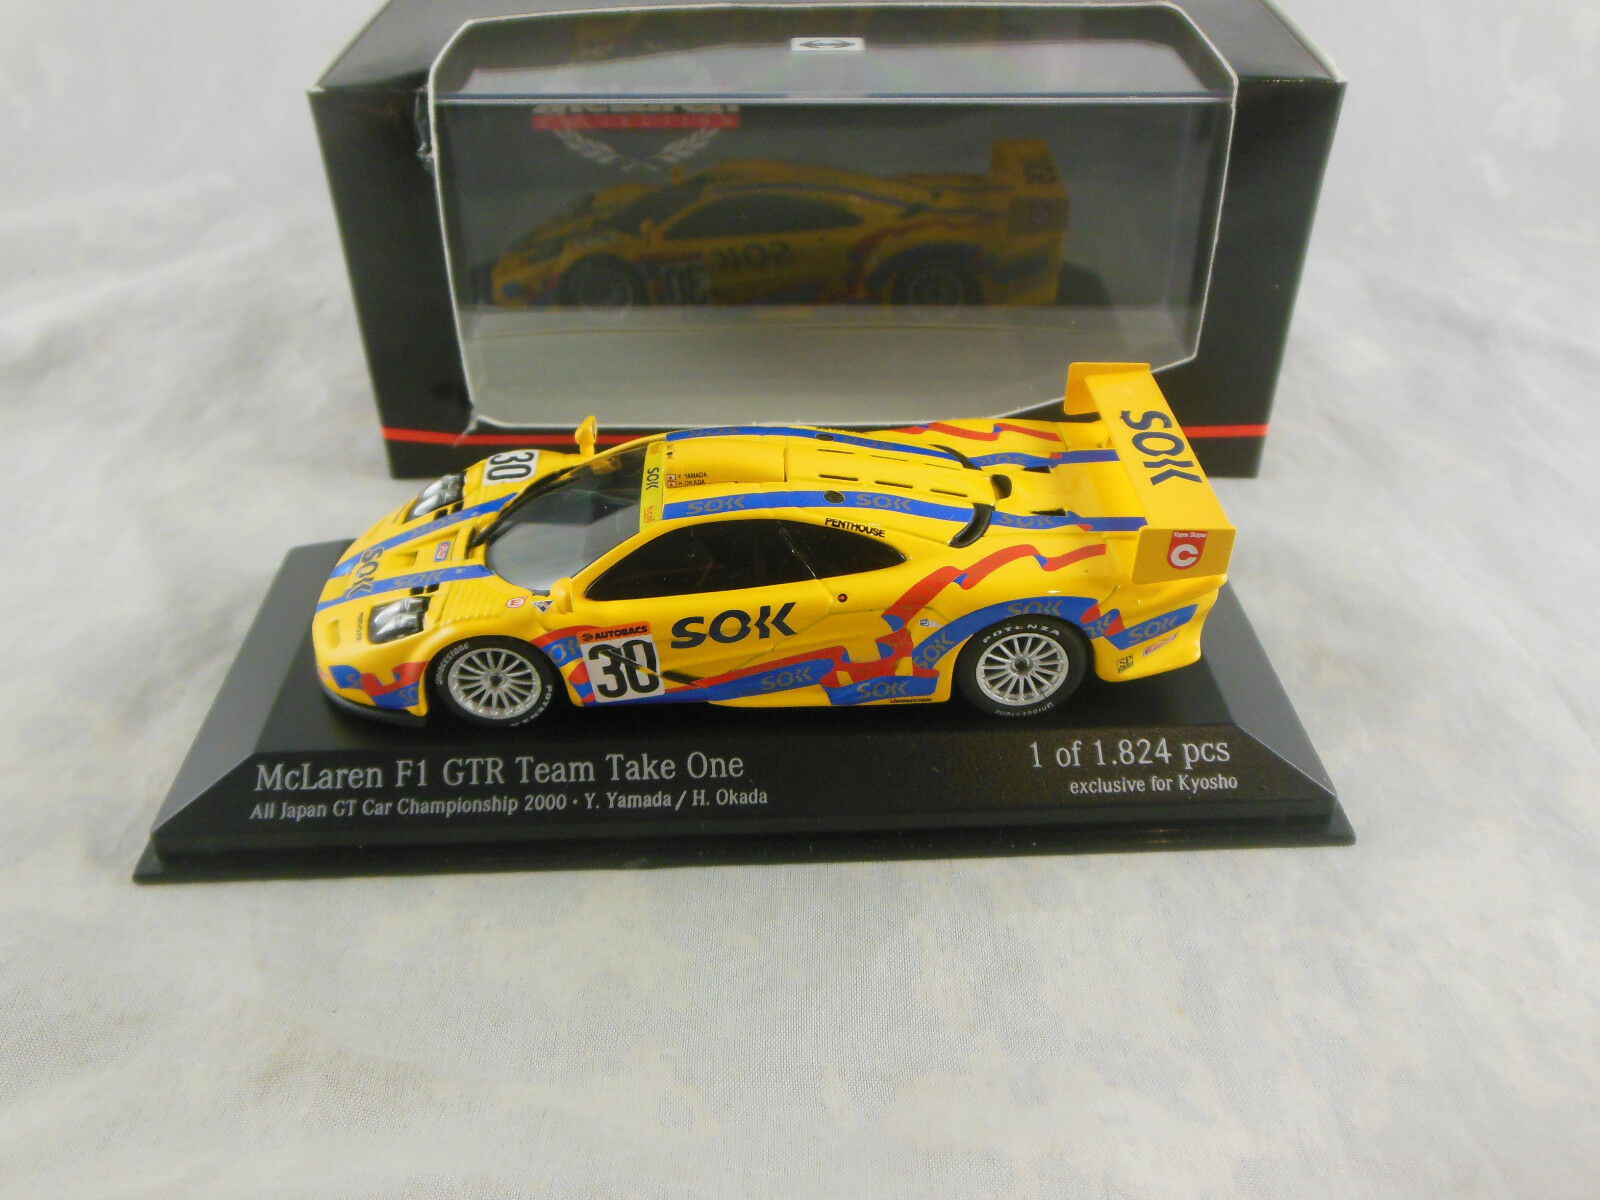 Minichamps 533 204330 McLaren F1 GTR  Japan GTC 2000 Team Take One Y Yamada